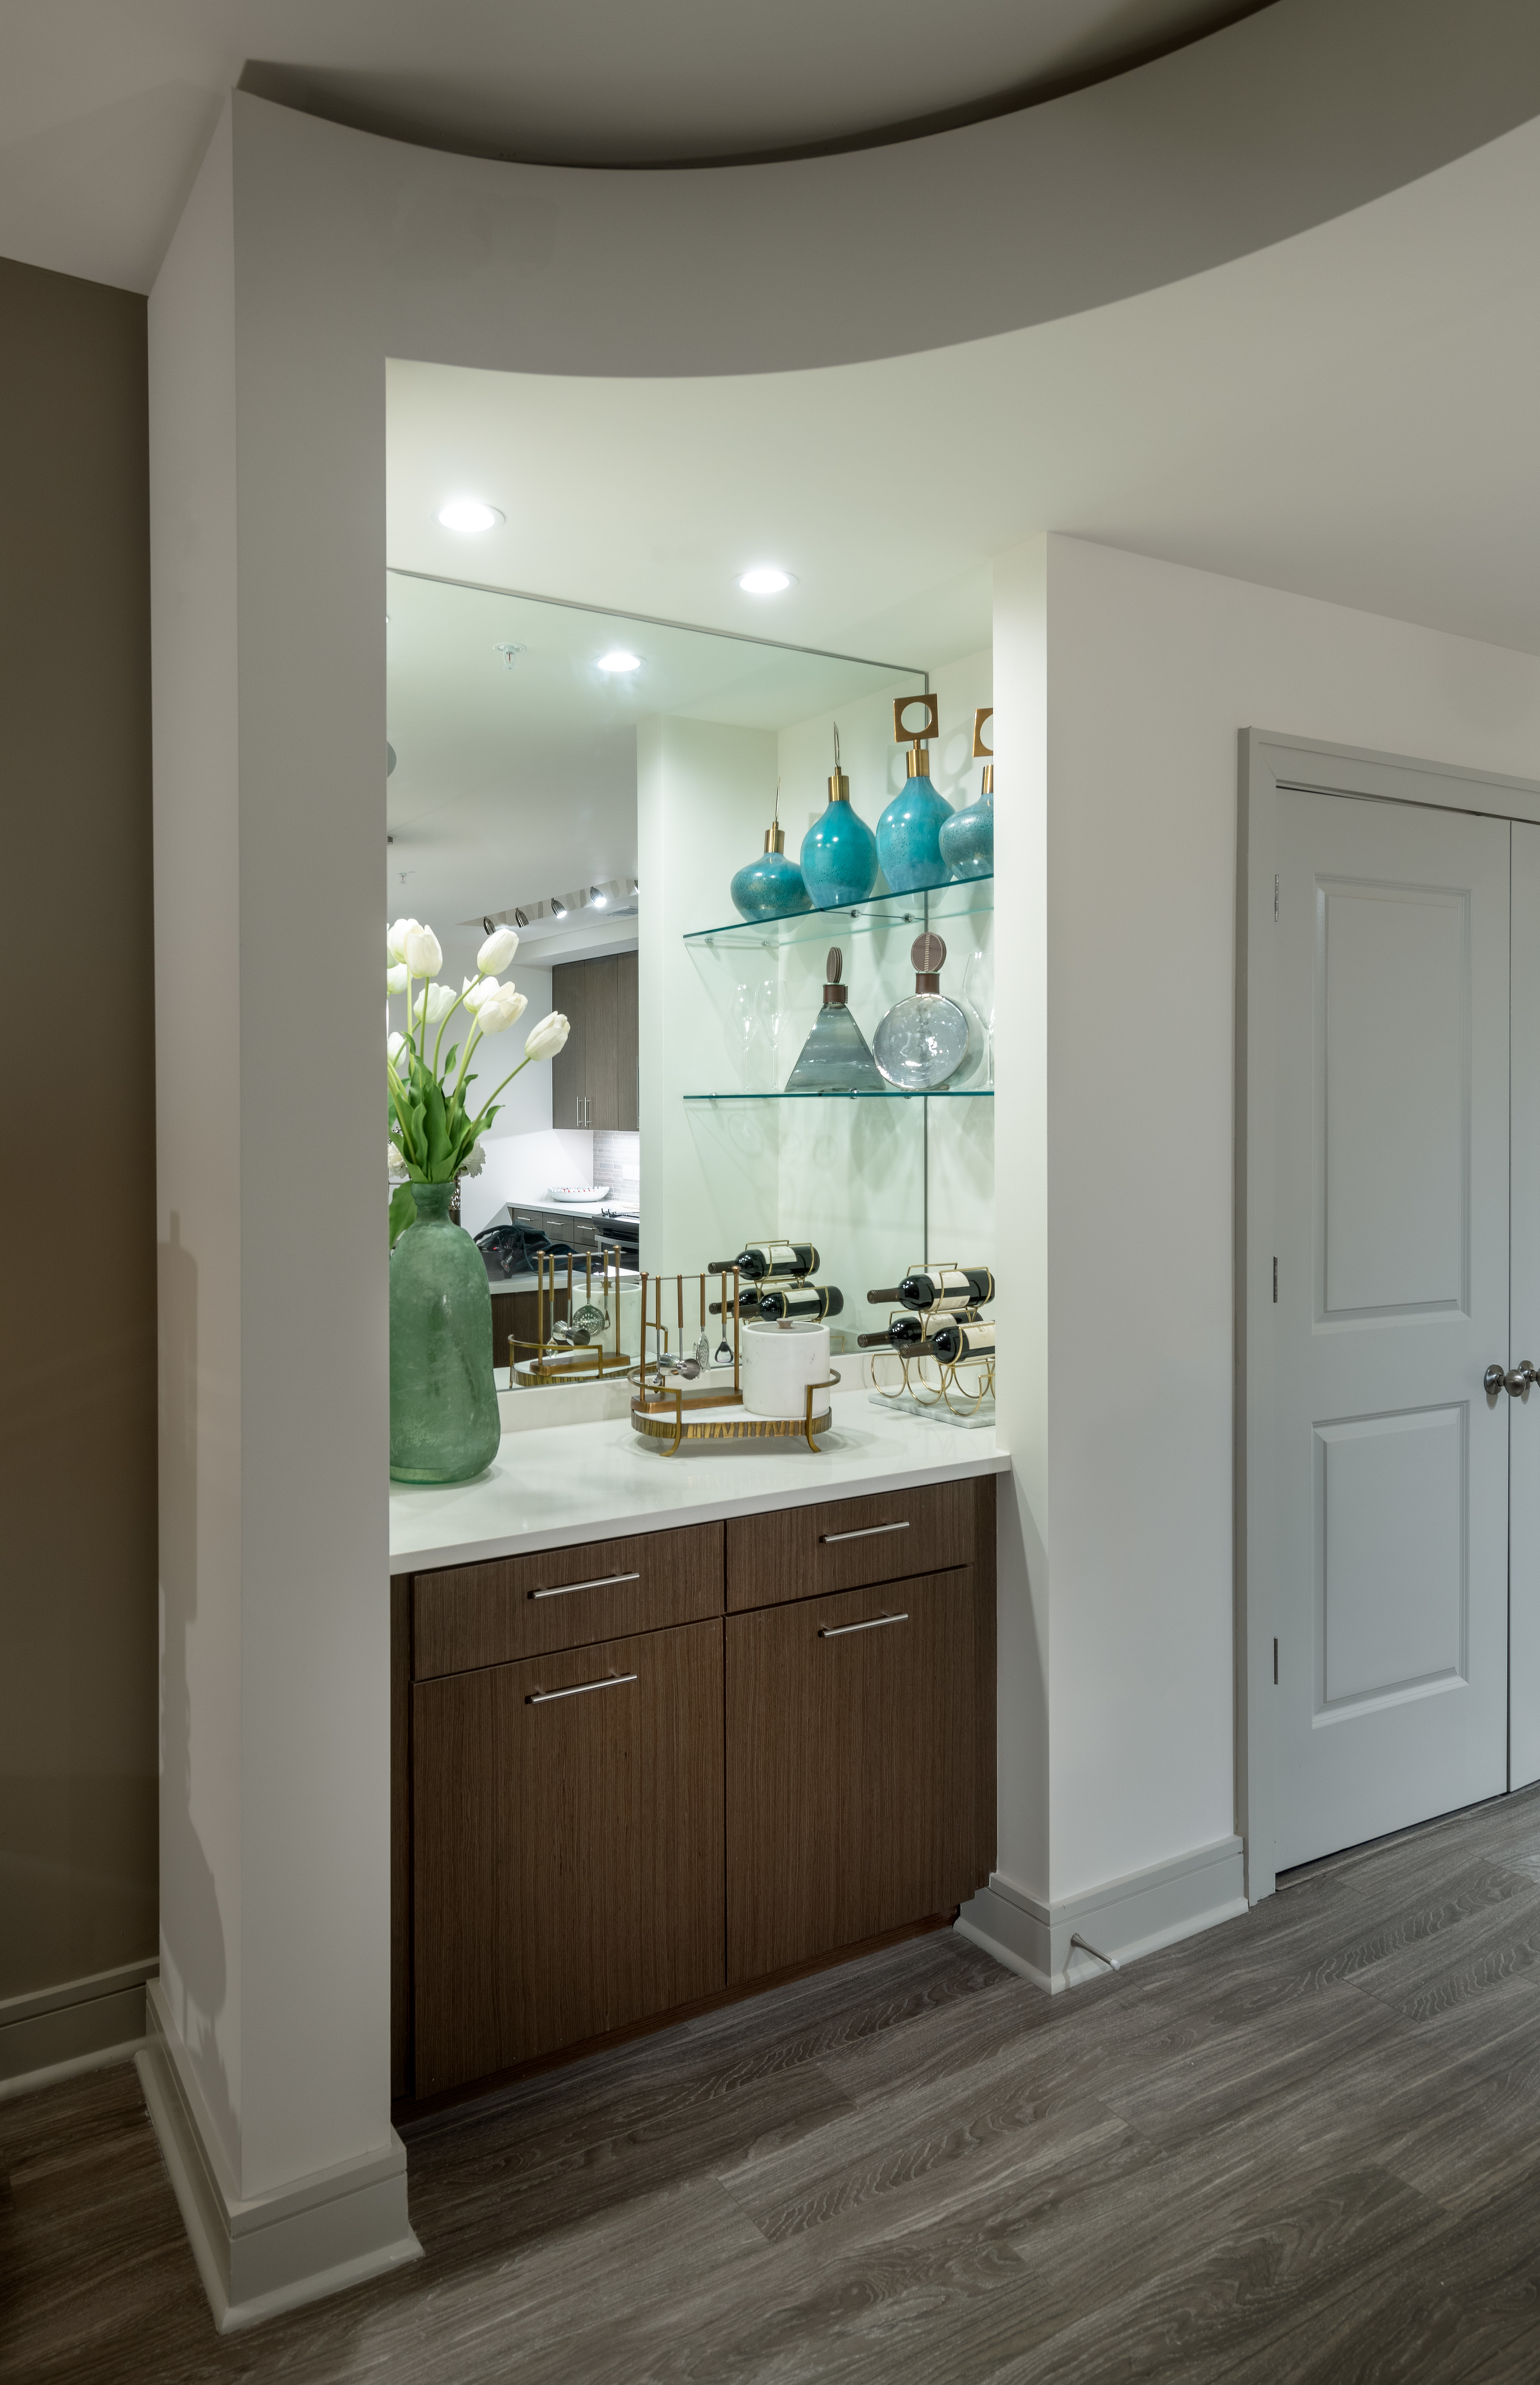 Image of Select Home Features: Dry Bar, Built-In Desks, Double Ovens and Terraces* for Hanover Midtown